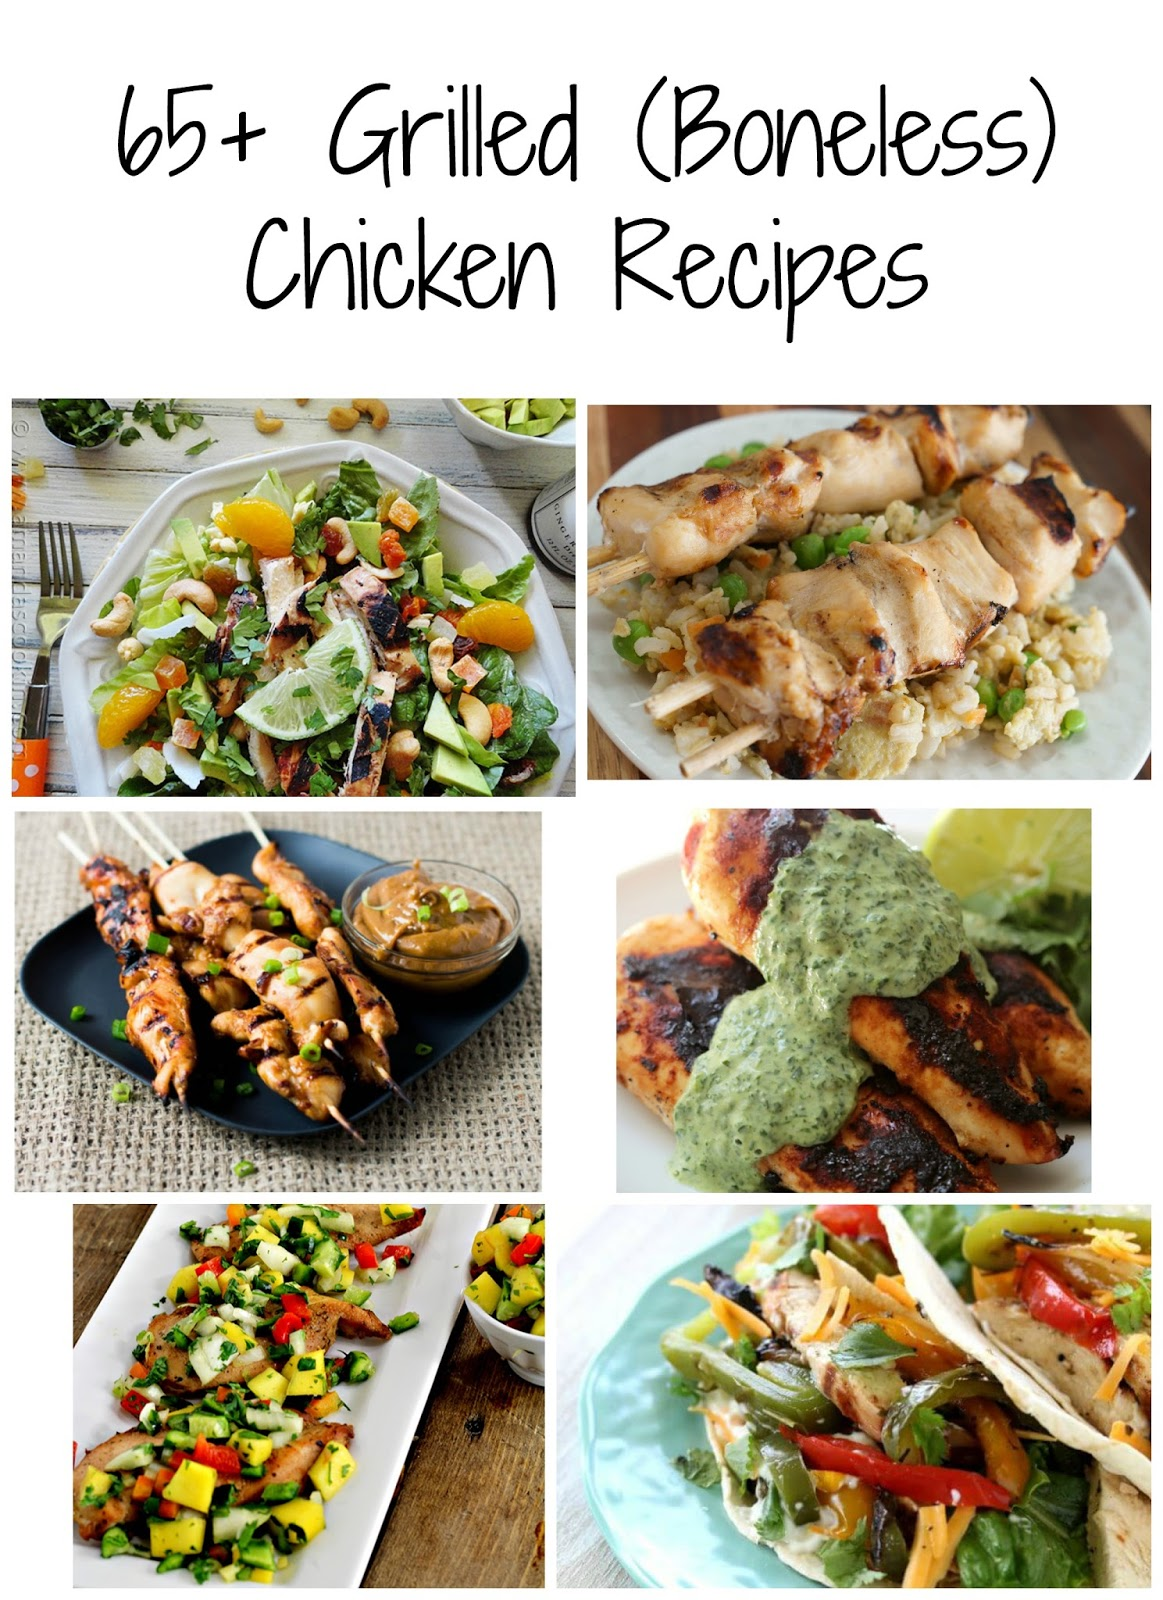 In the kitchen with jenny 65 grilled chicken recipe for Good side dishes for grilled chicken